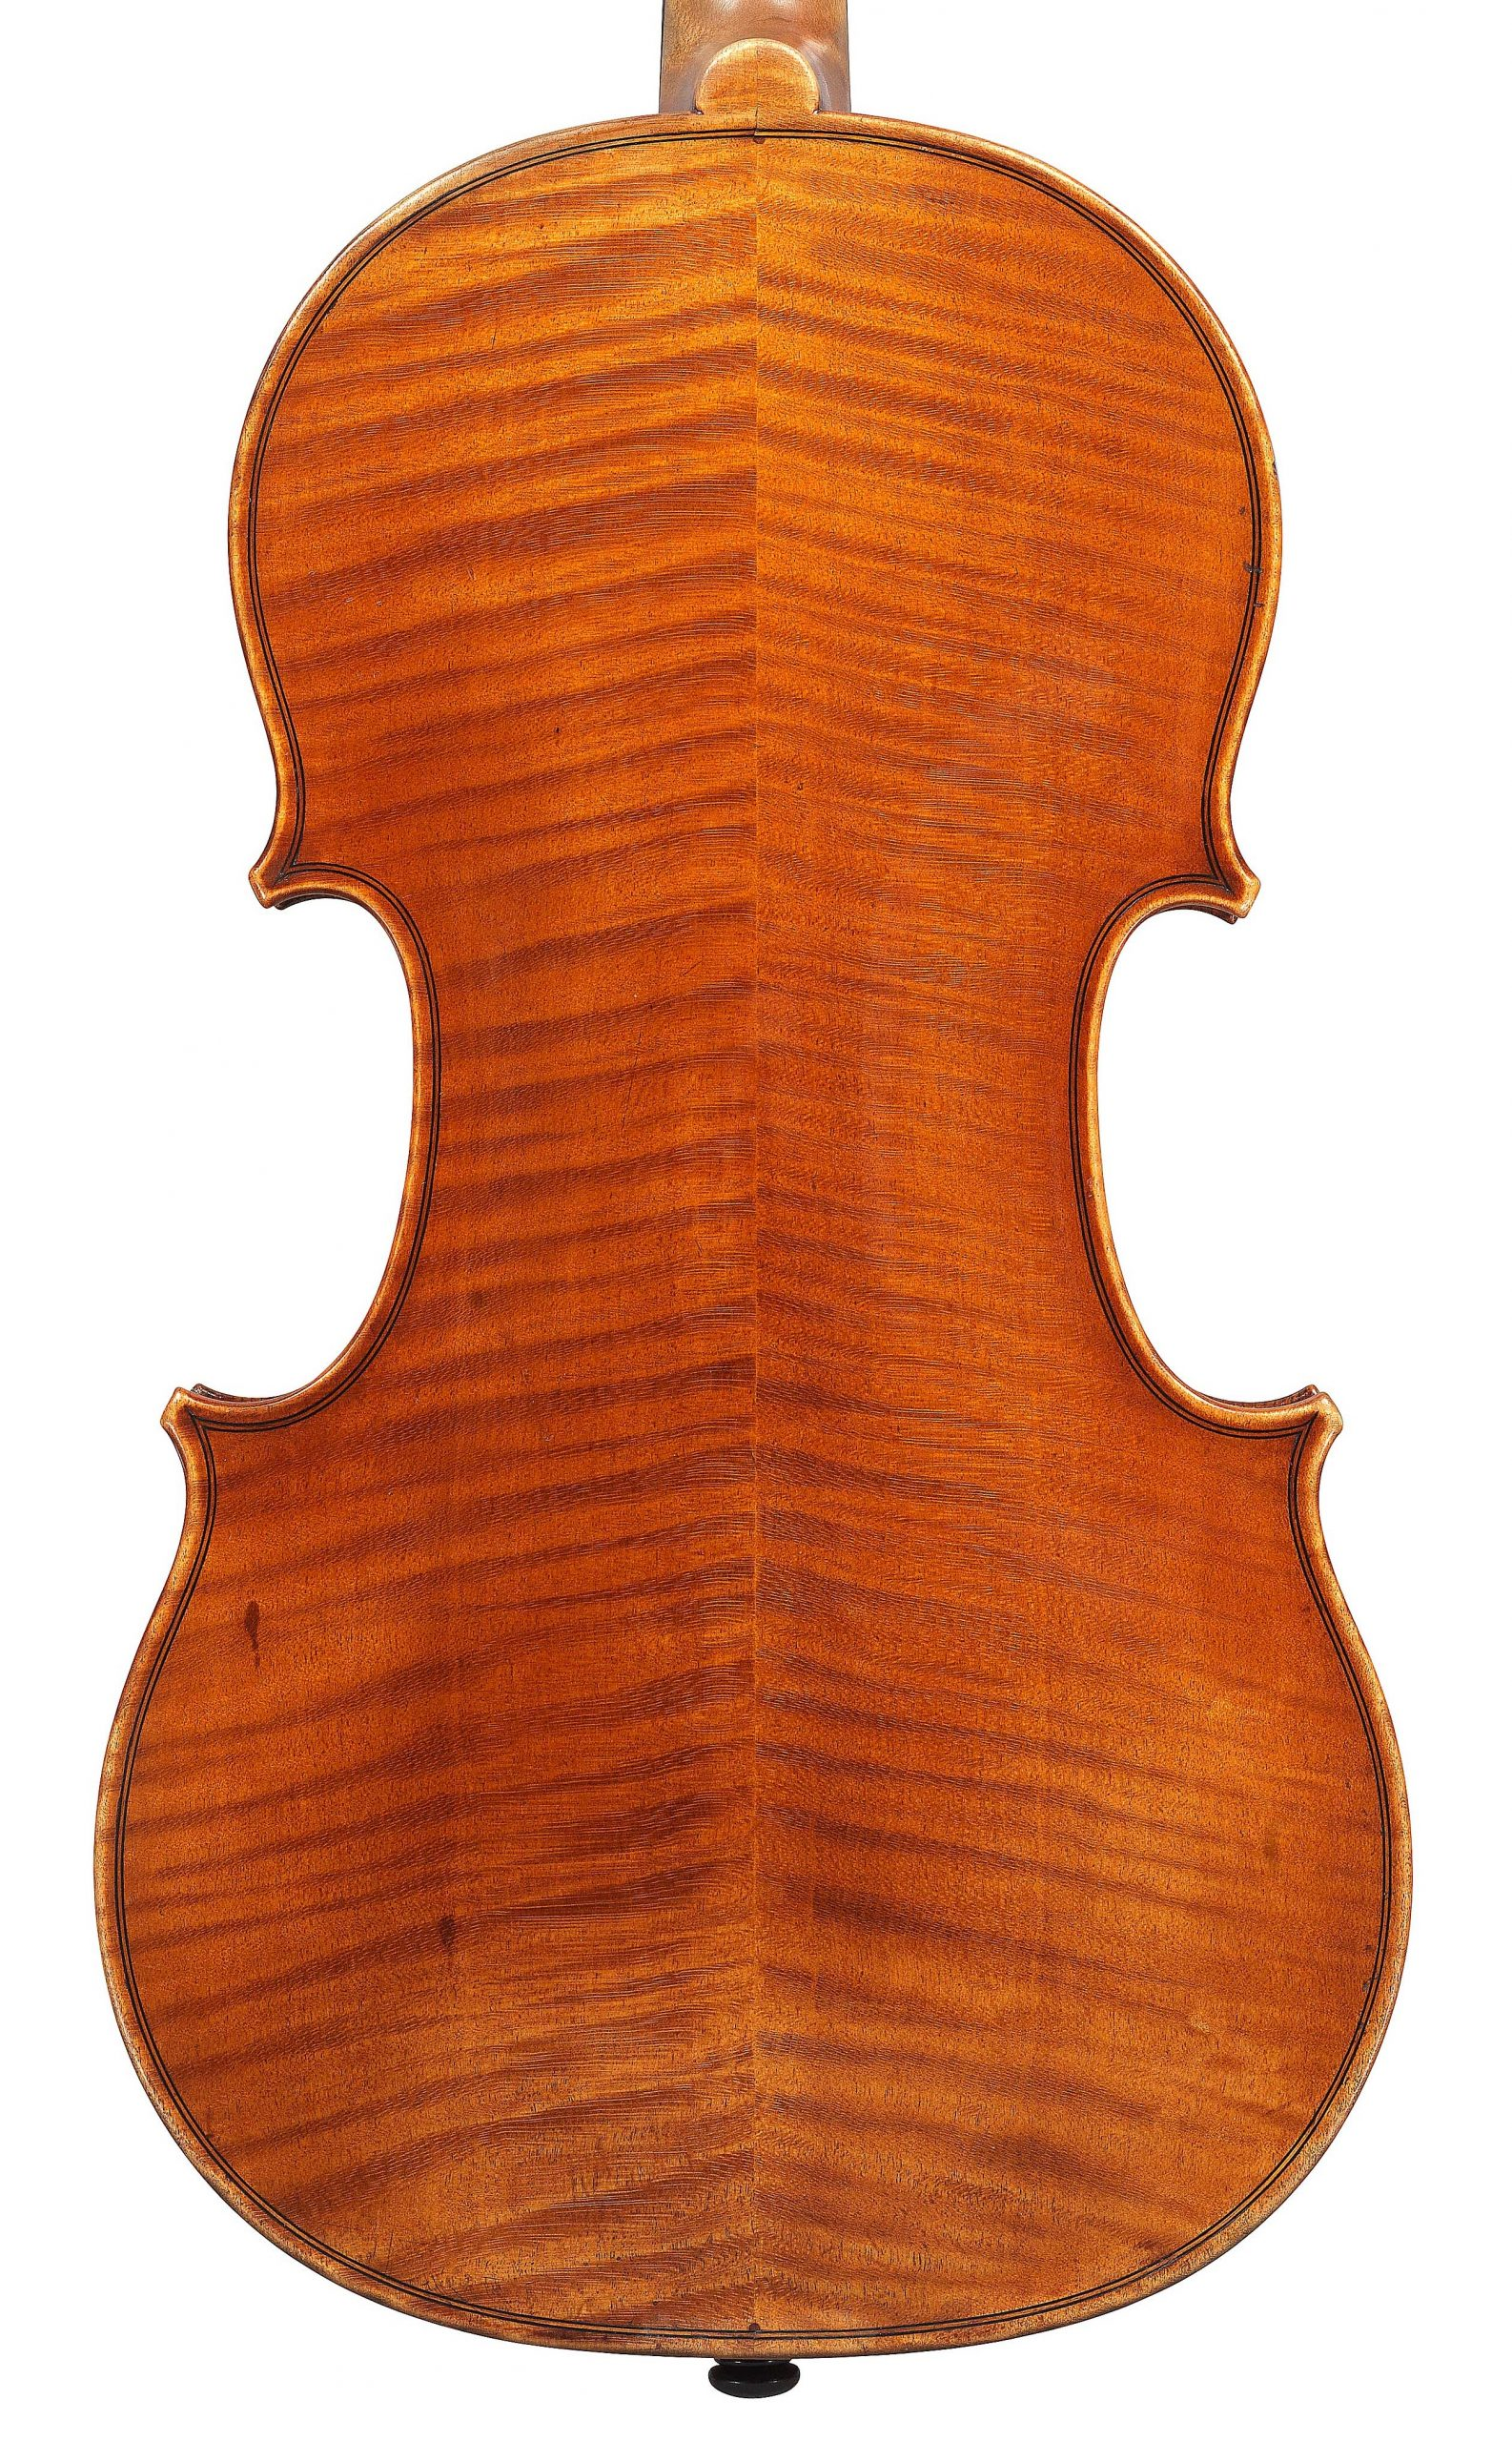 Back of violin by JB Vuillaume, ex-Posner, dated 1871, exhibited by Ingles & Hayday at Sotheby's in 2012